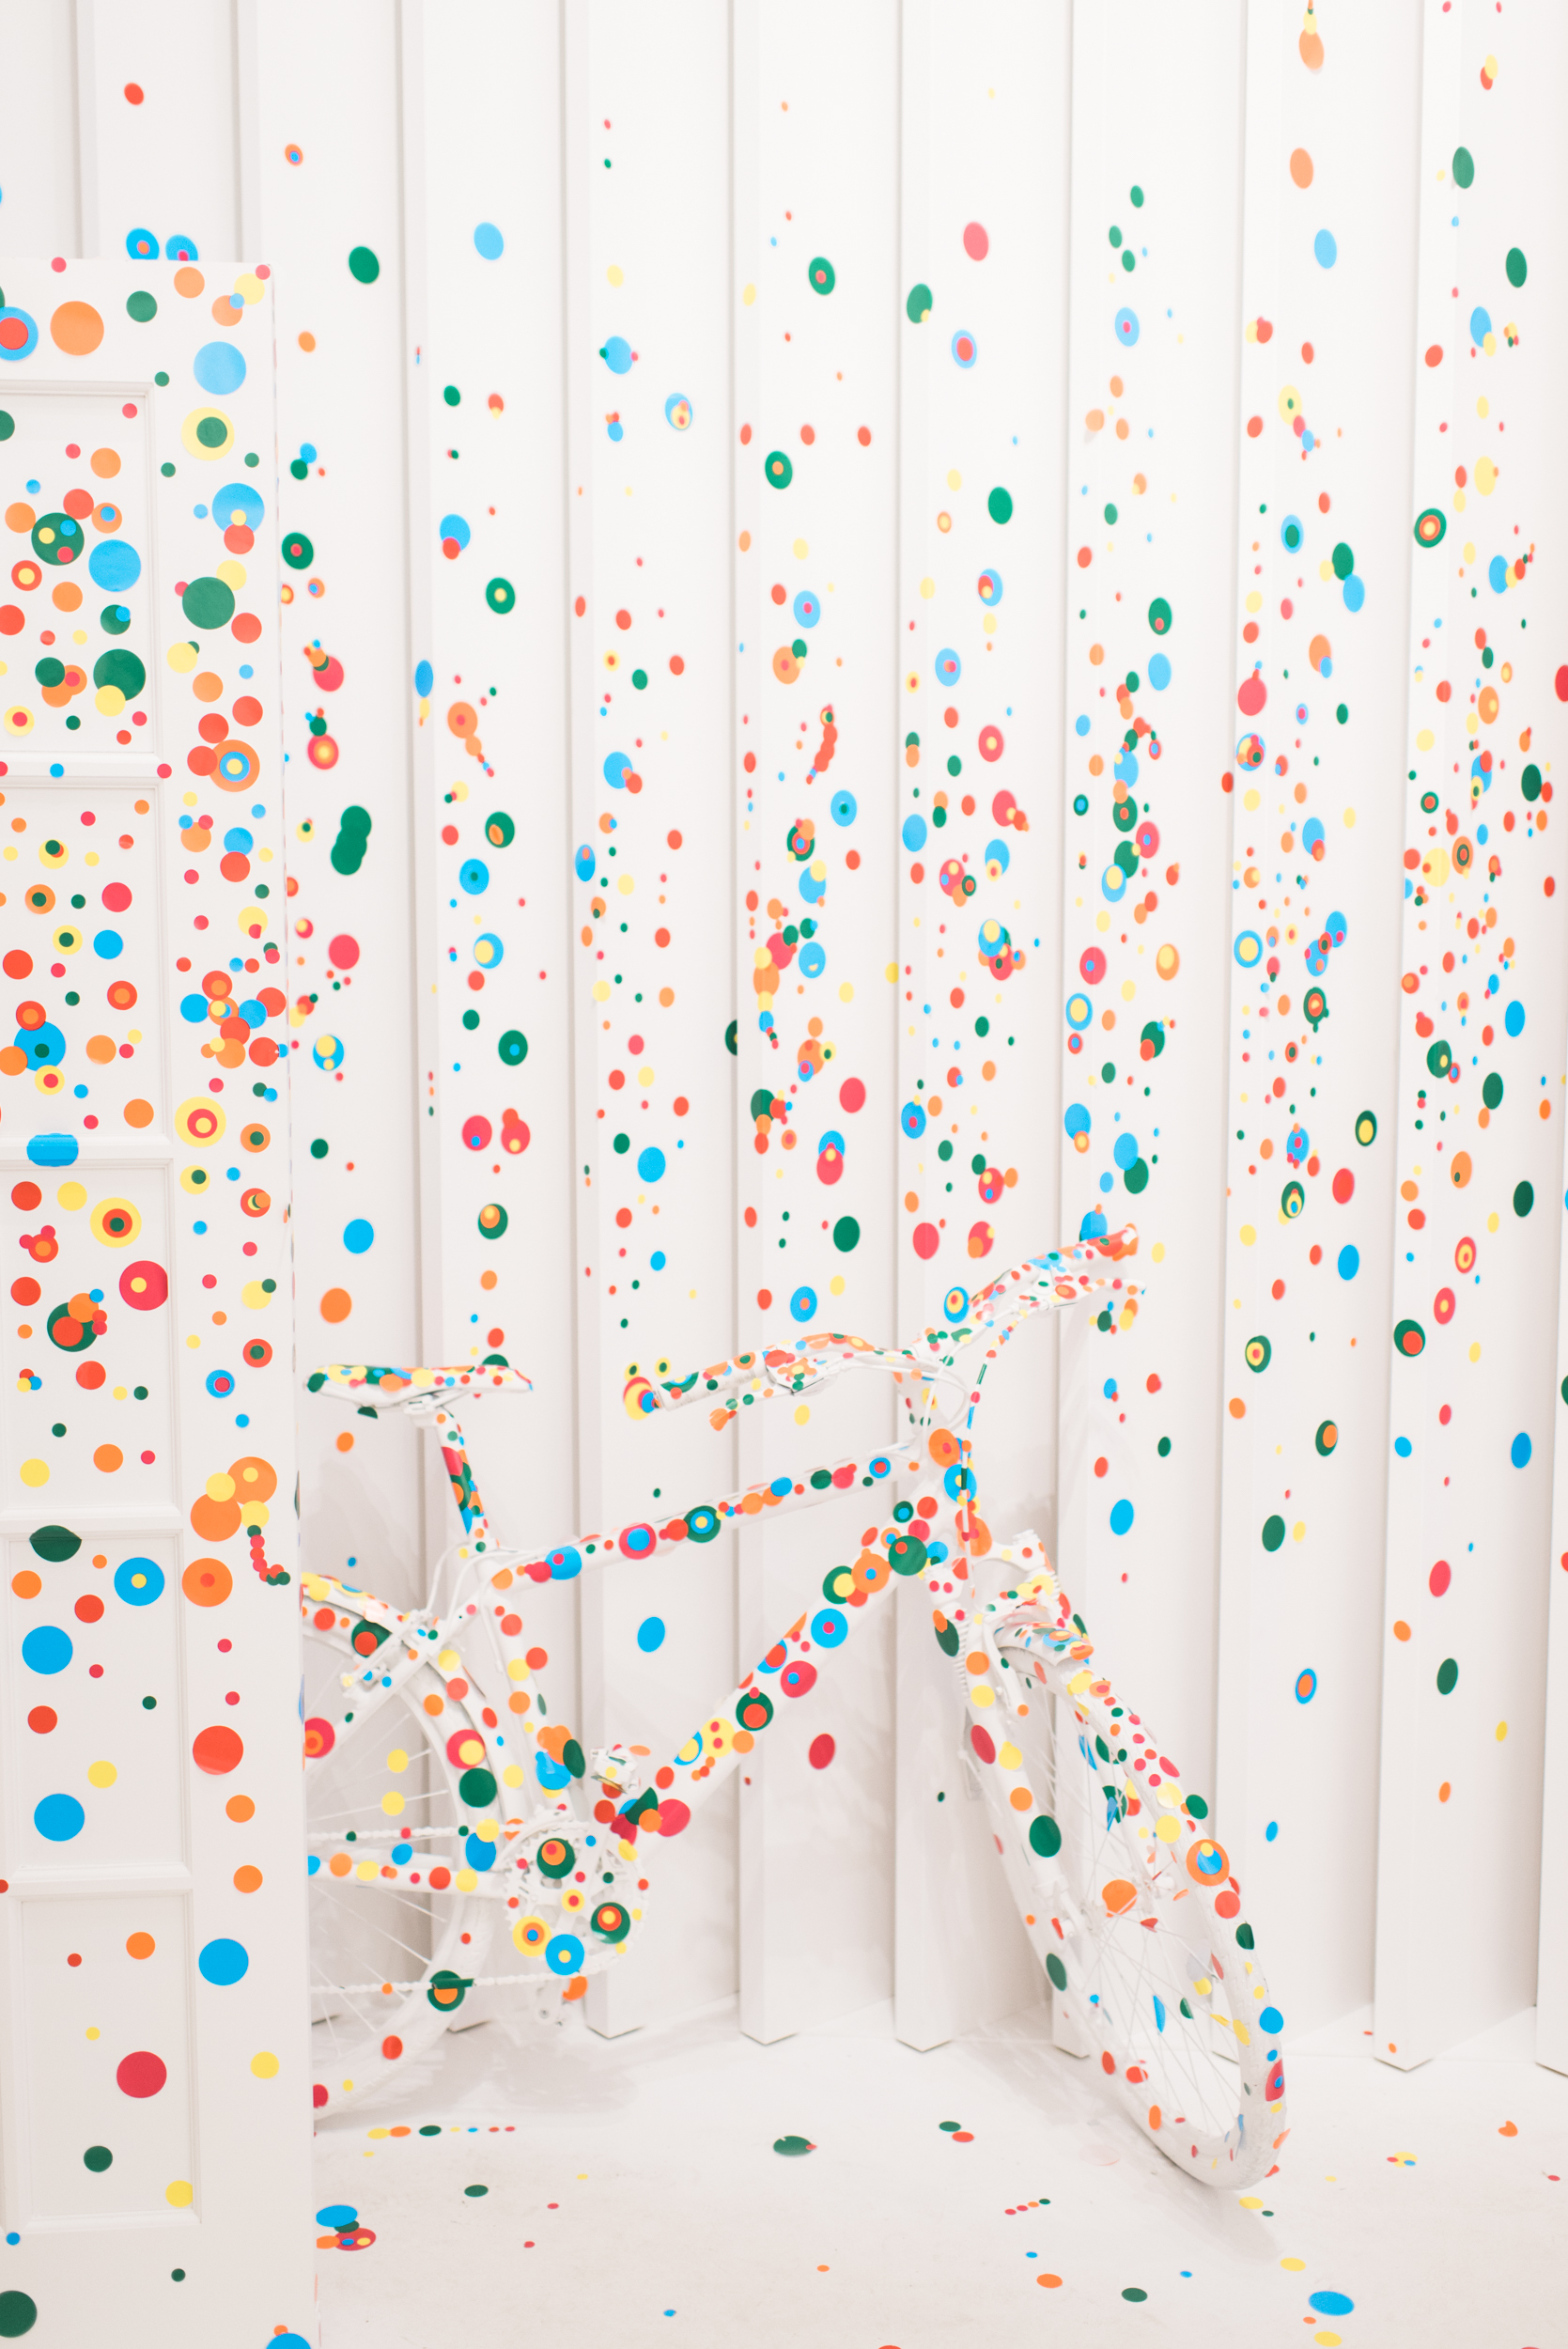 The Obliteration Room  (2002)